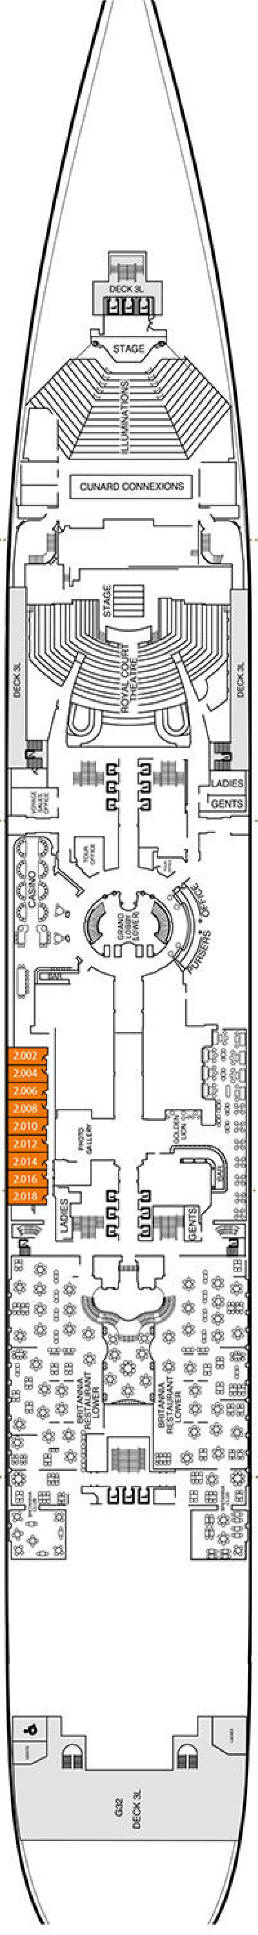 Deck PLAN Cunard World Cruise Queen Mary 2 Qm2 Image